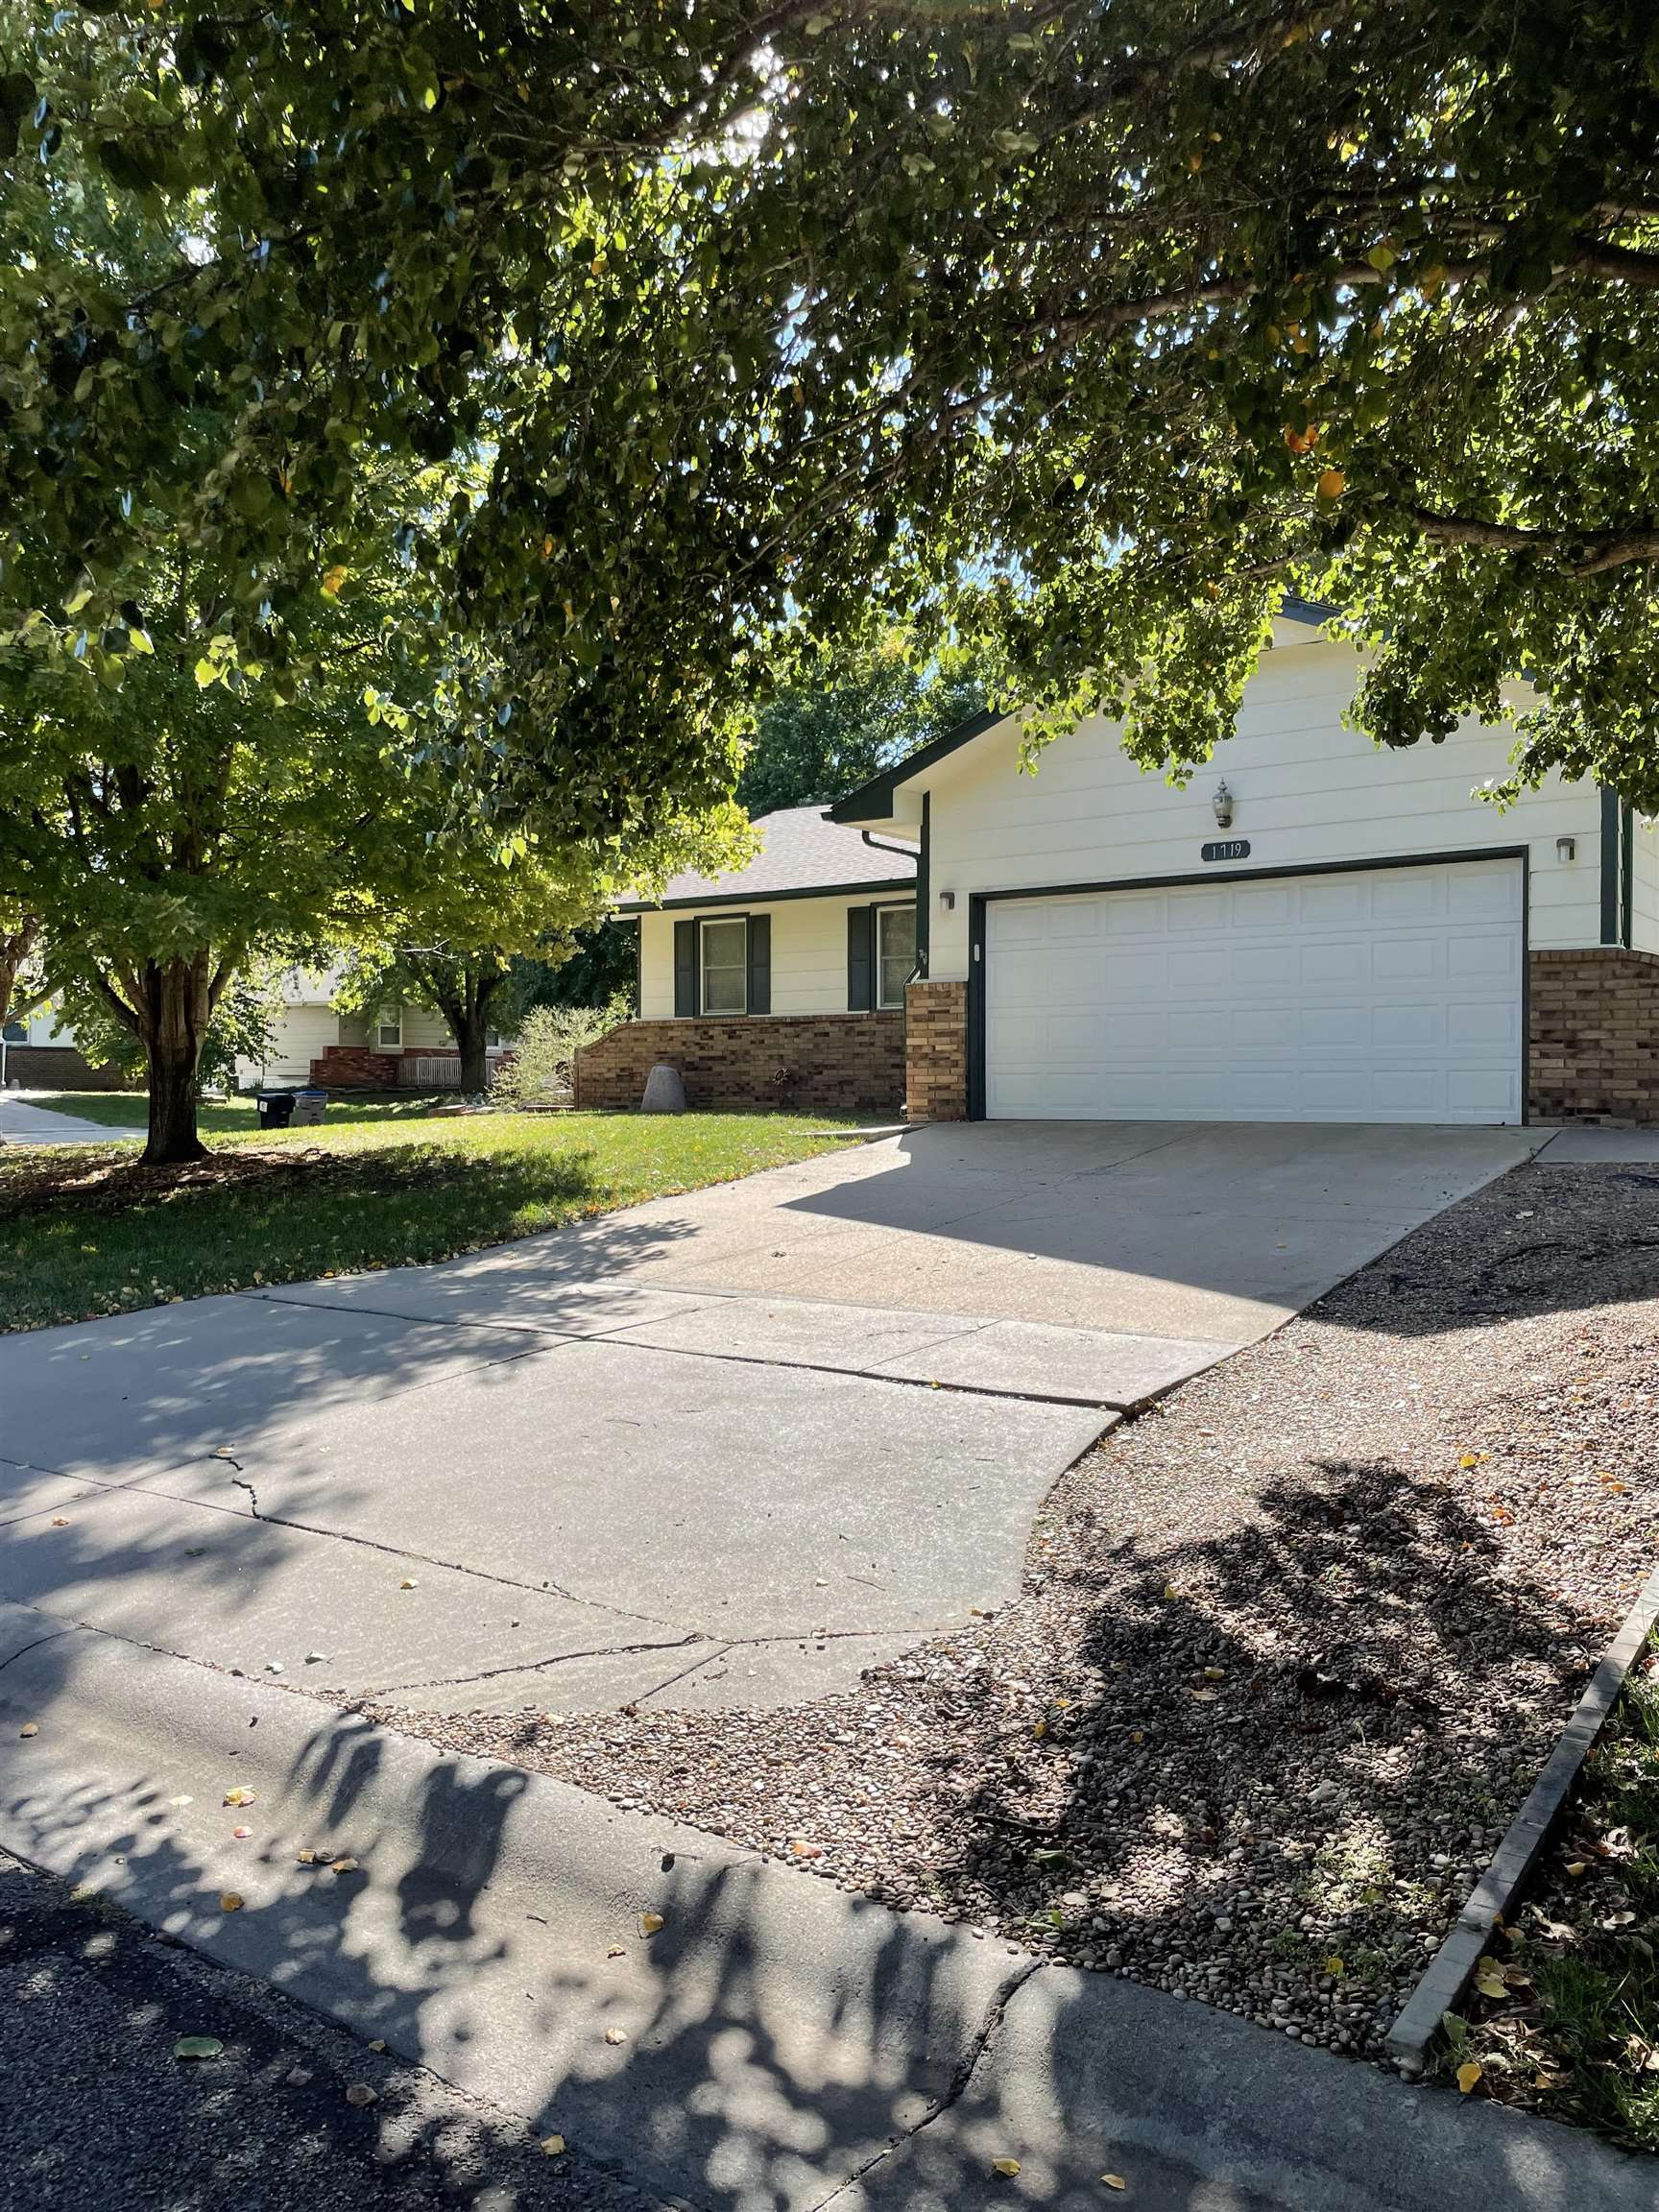 Come check out this 4 bed/2.5 bath home.  All new carpet throughout.  This open floorplan is just wa